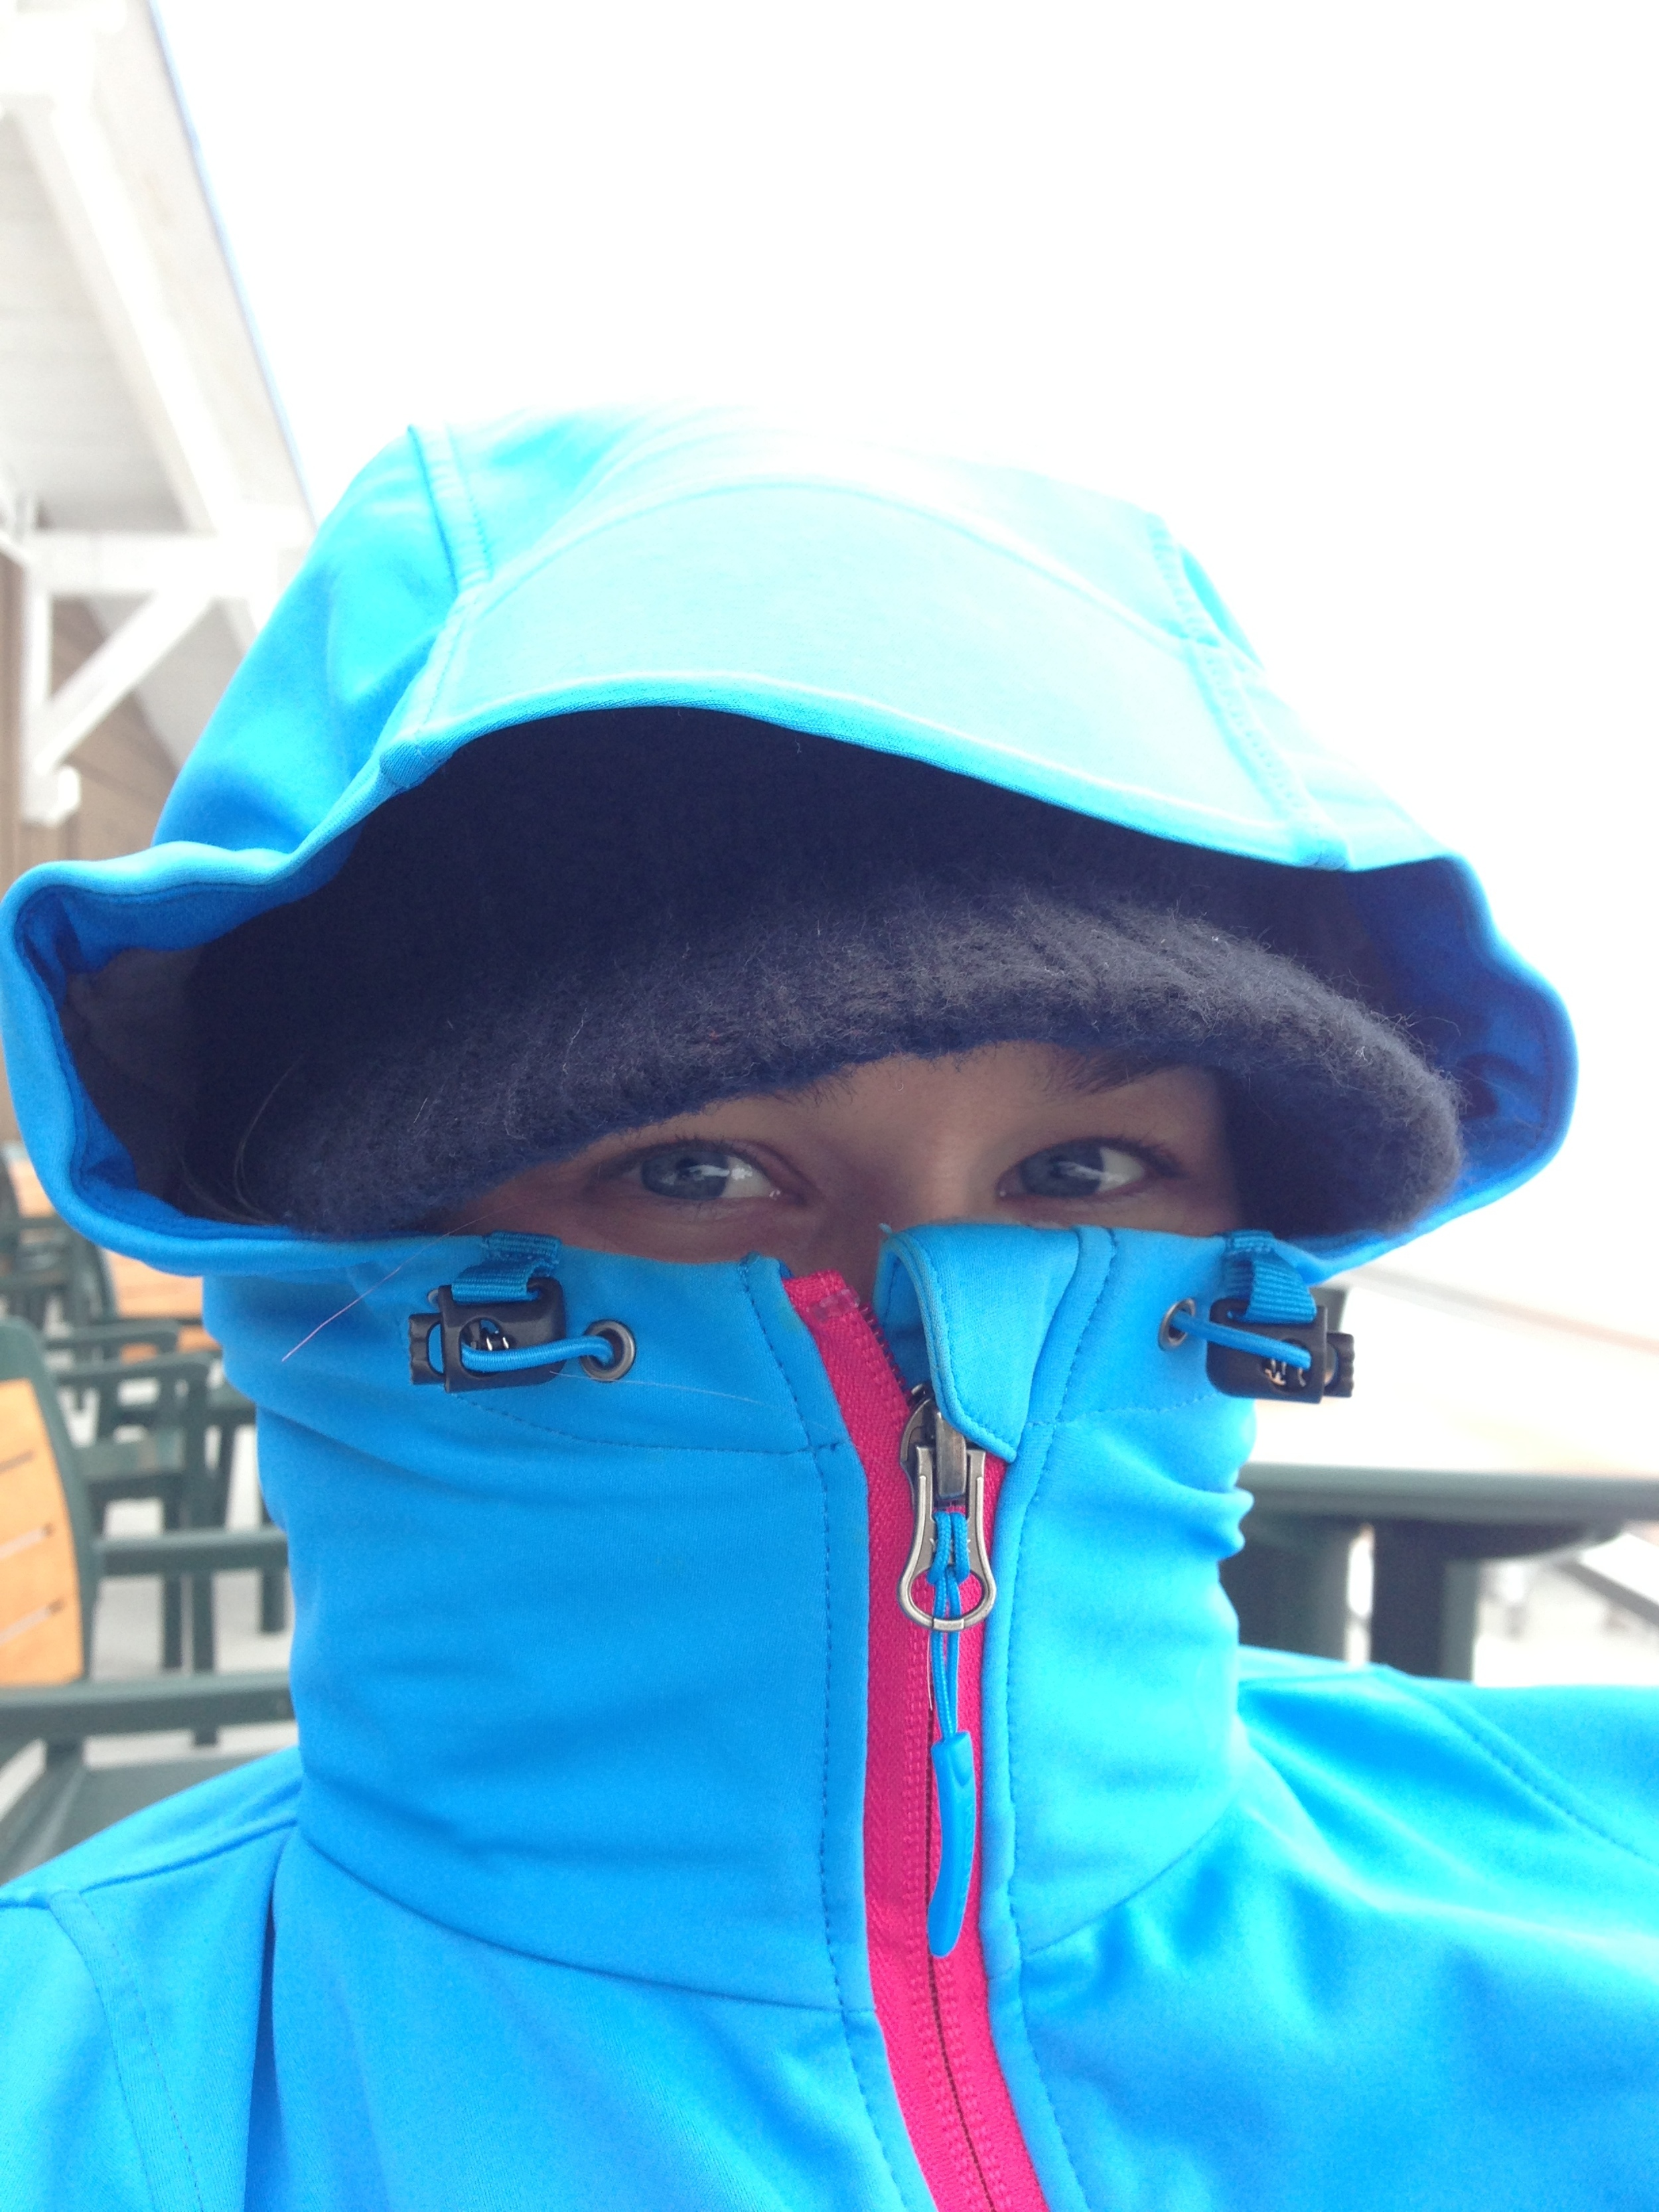 It was a little cold